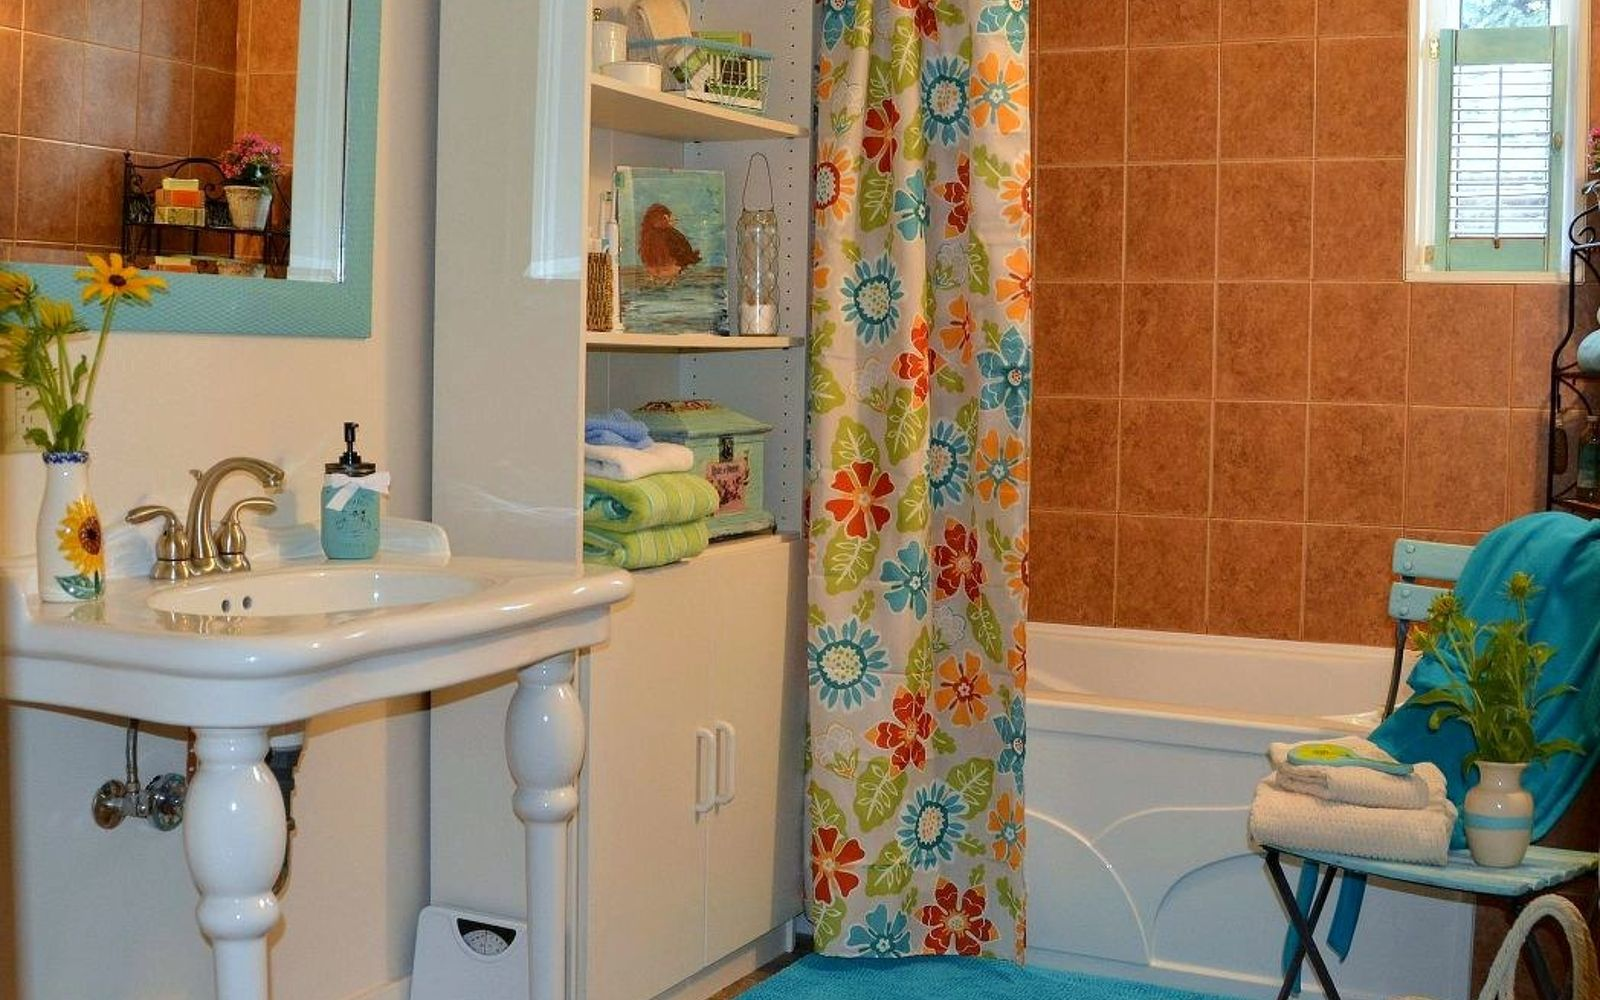 s 9 genius decorating hacks using tablecloths, repurposing upcycling, Make a quick shower curtain using clips